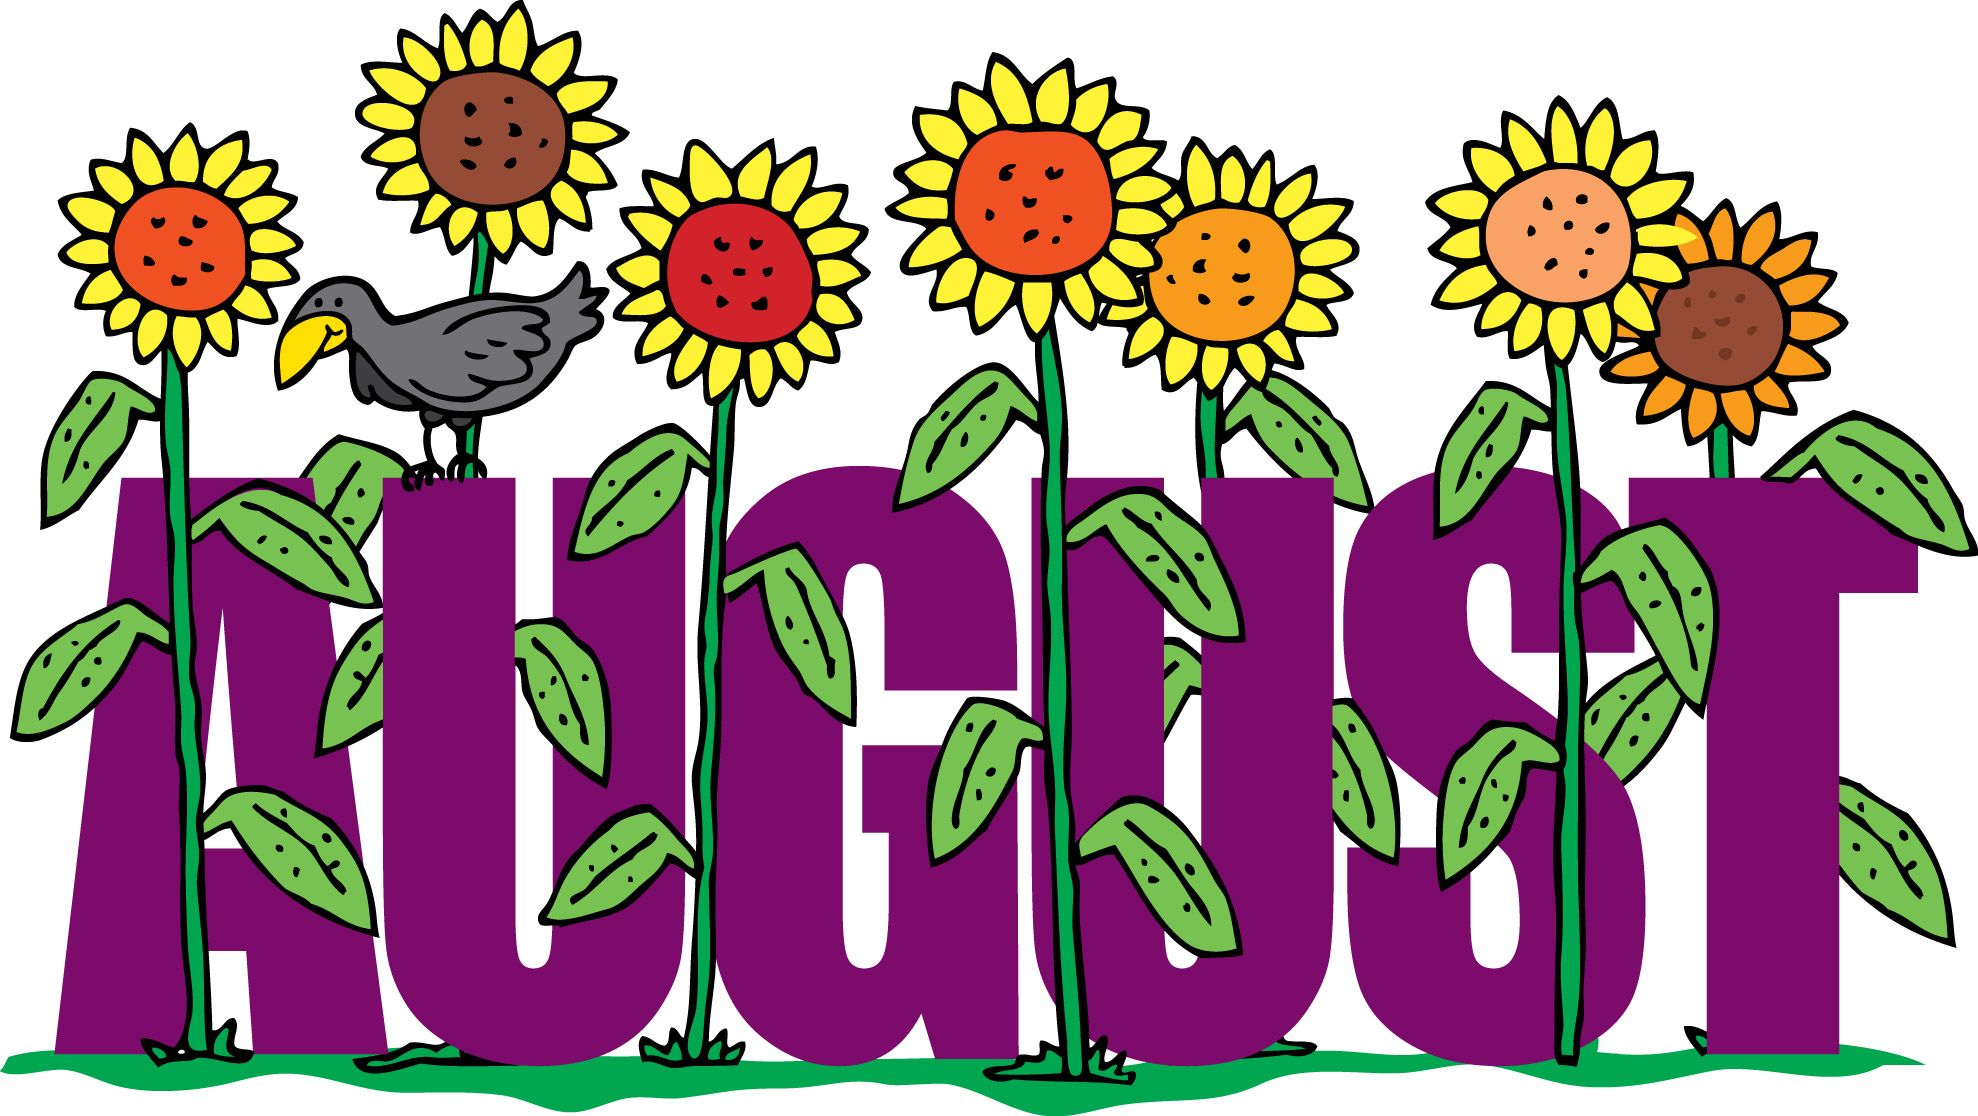 August Floral Clipart For Screen Saver.